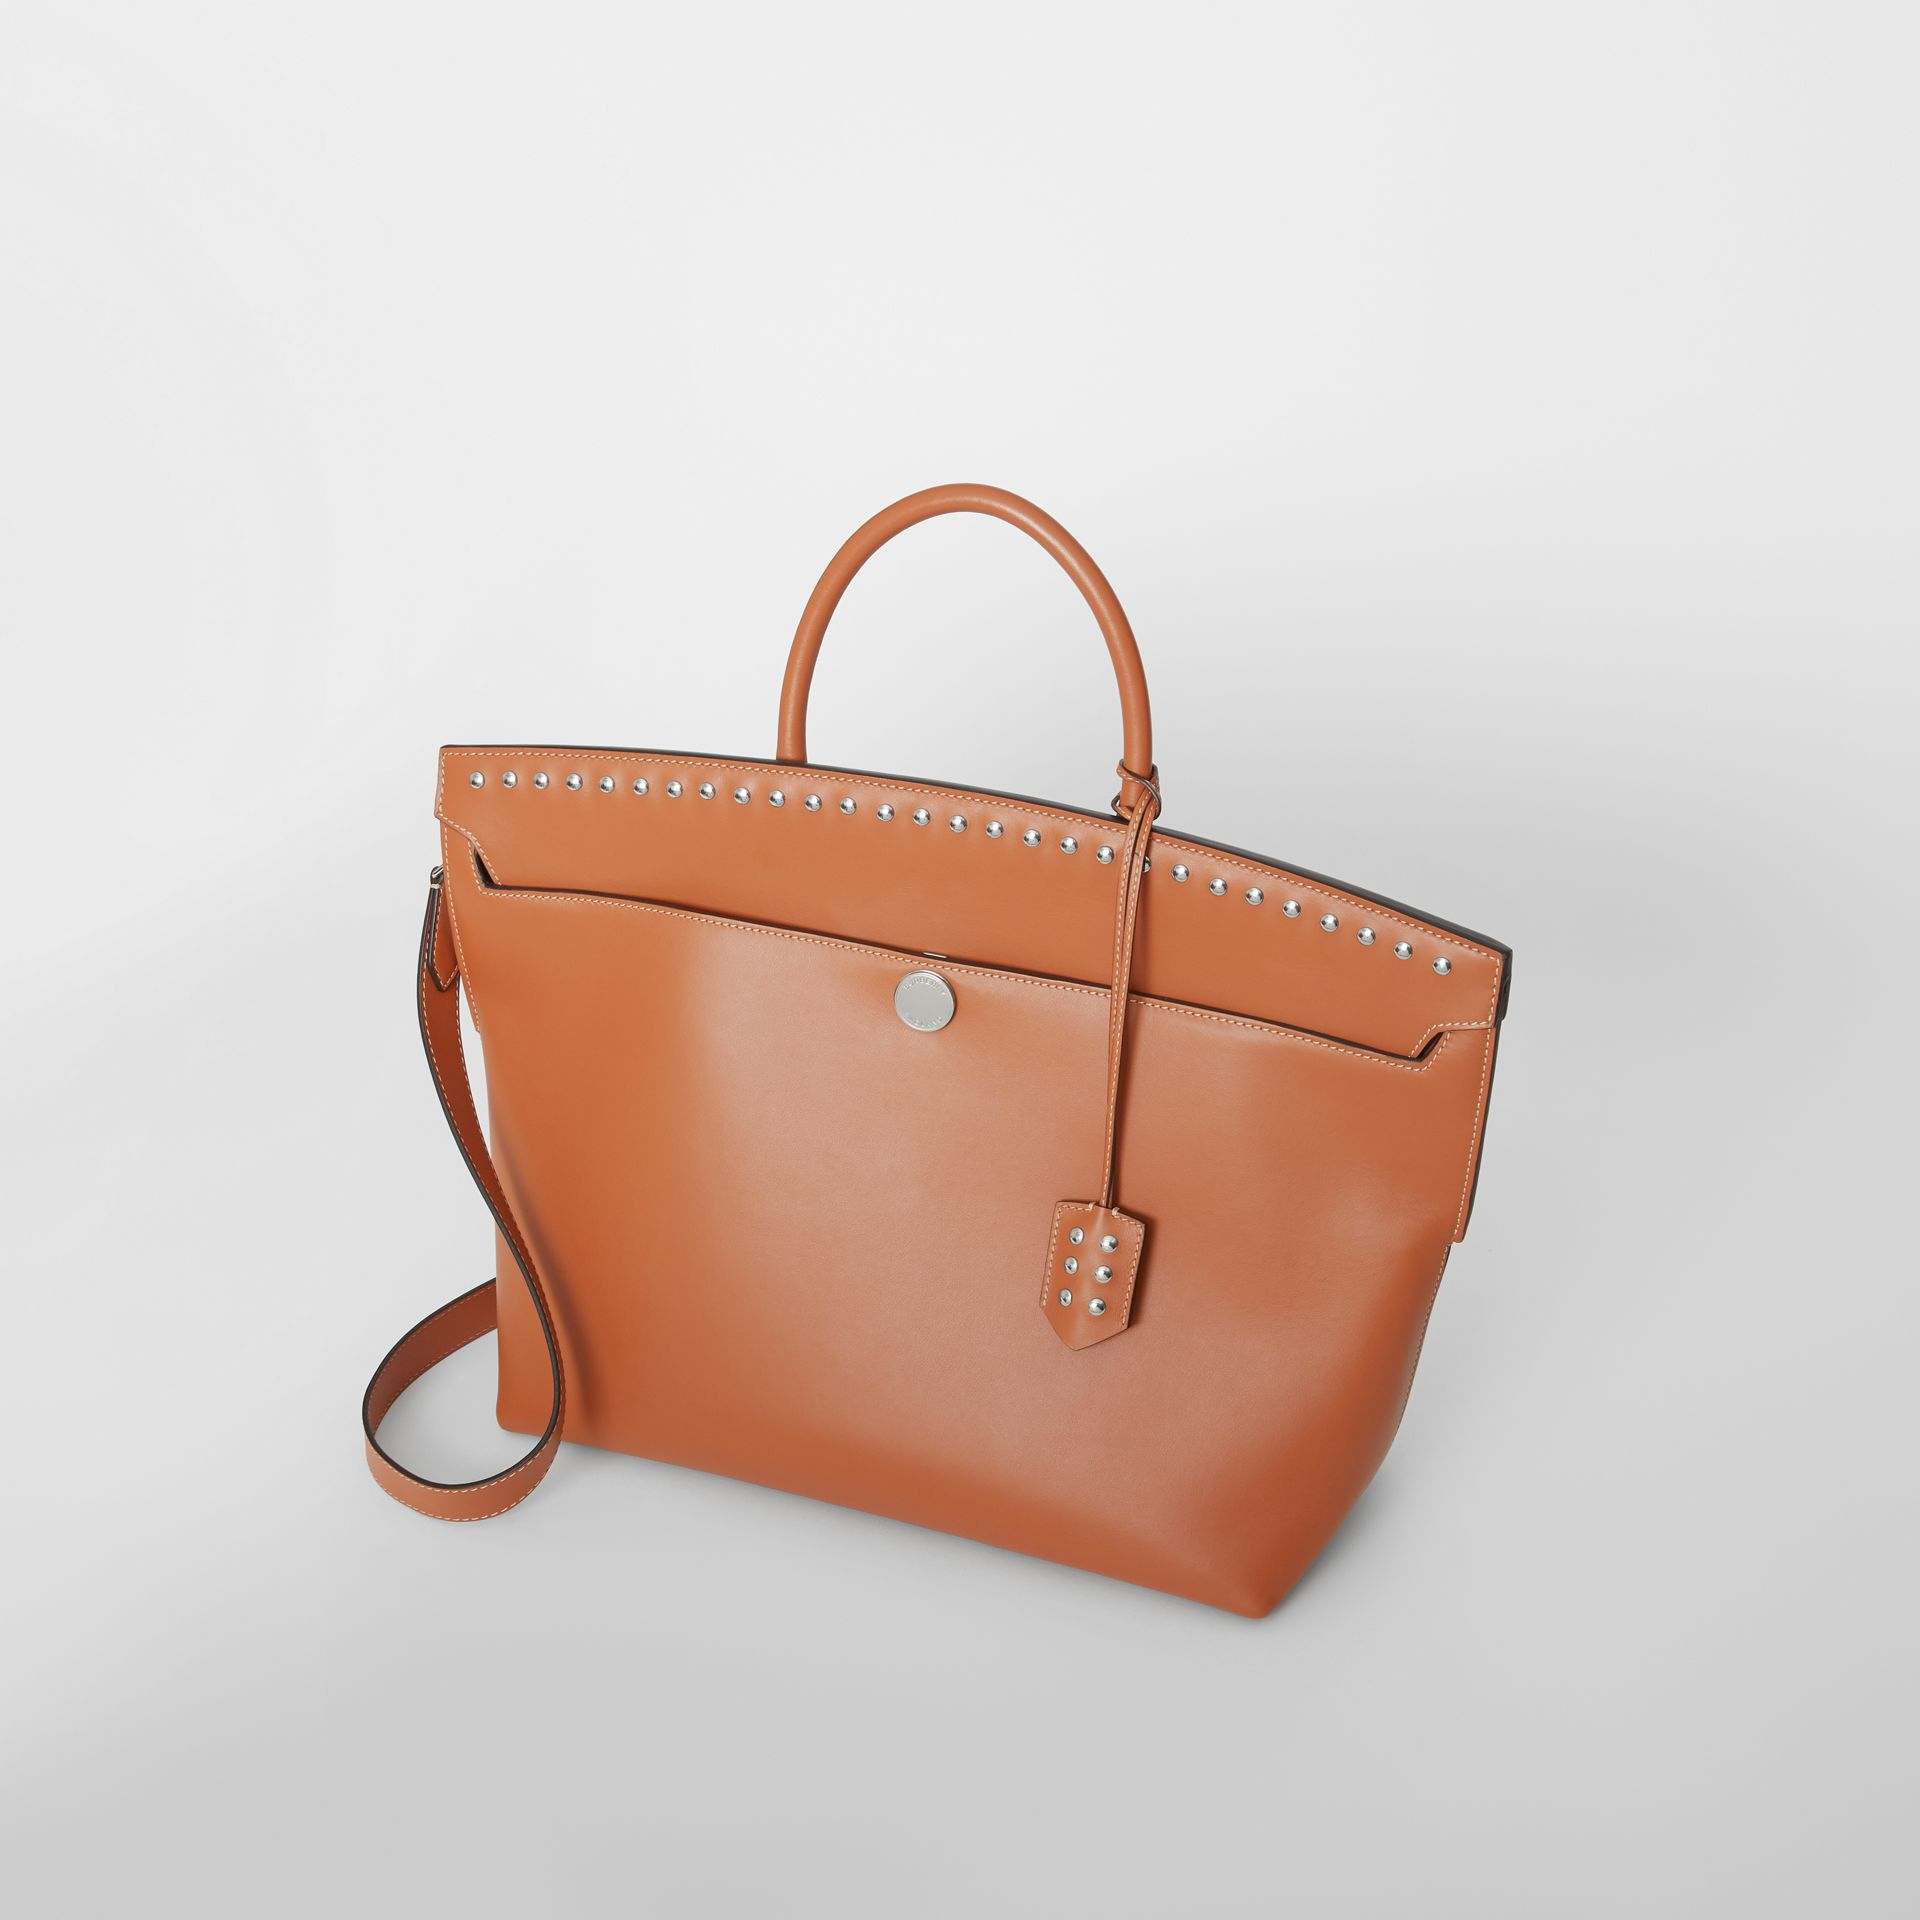 Studded Leather Society Top Handle Bag in Copper Brown - Women | Burberry - gallery image 3